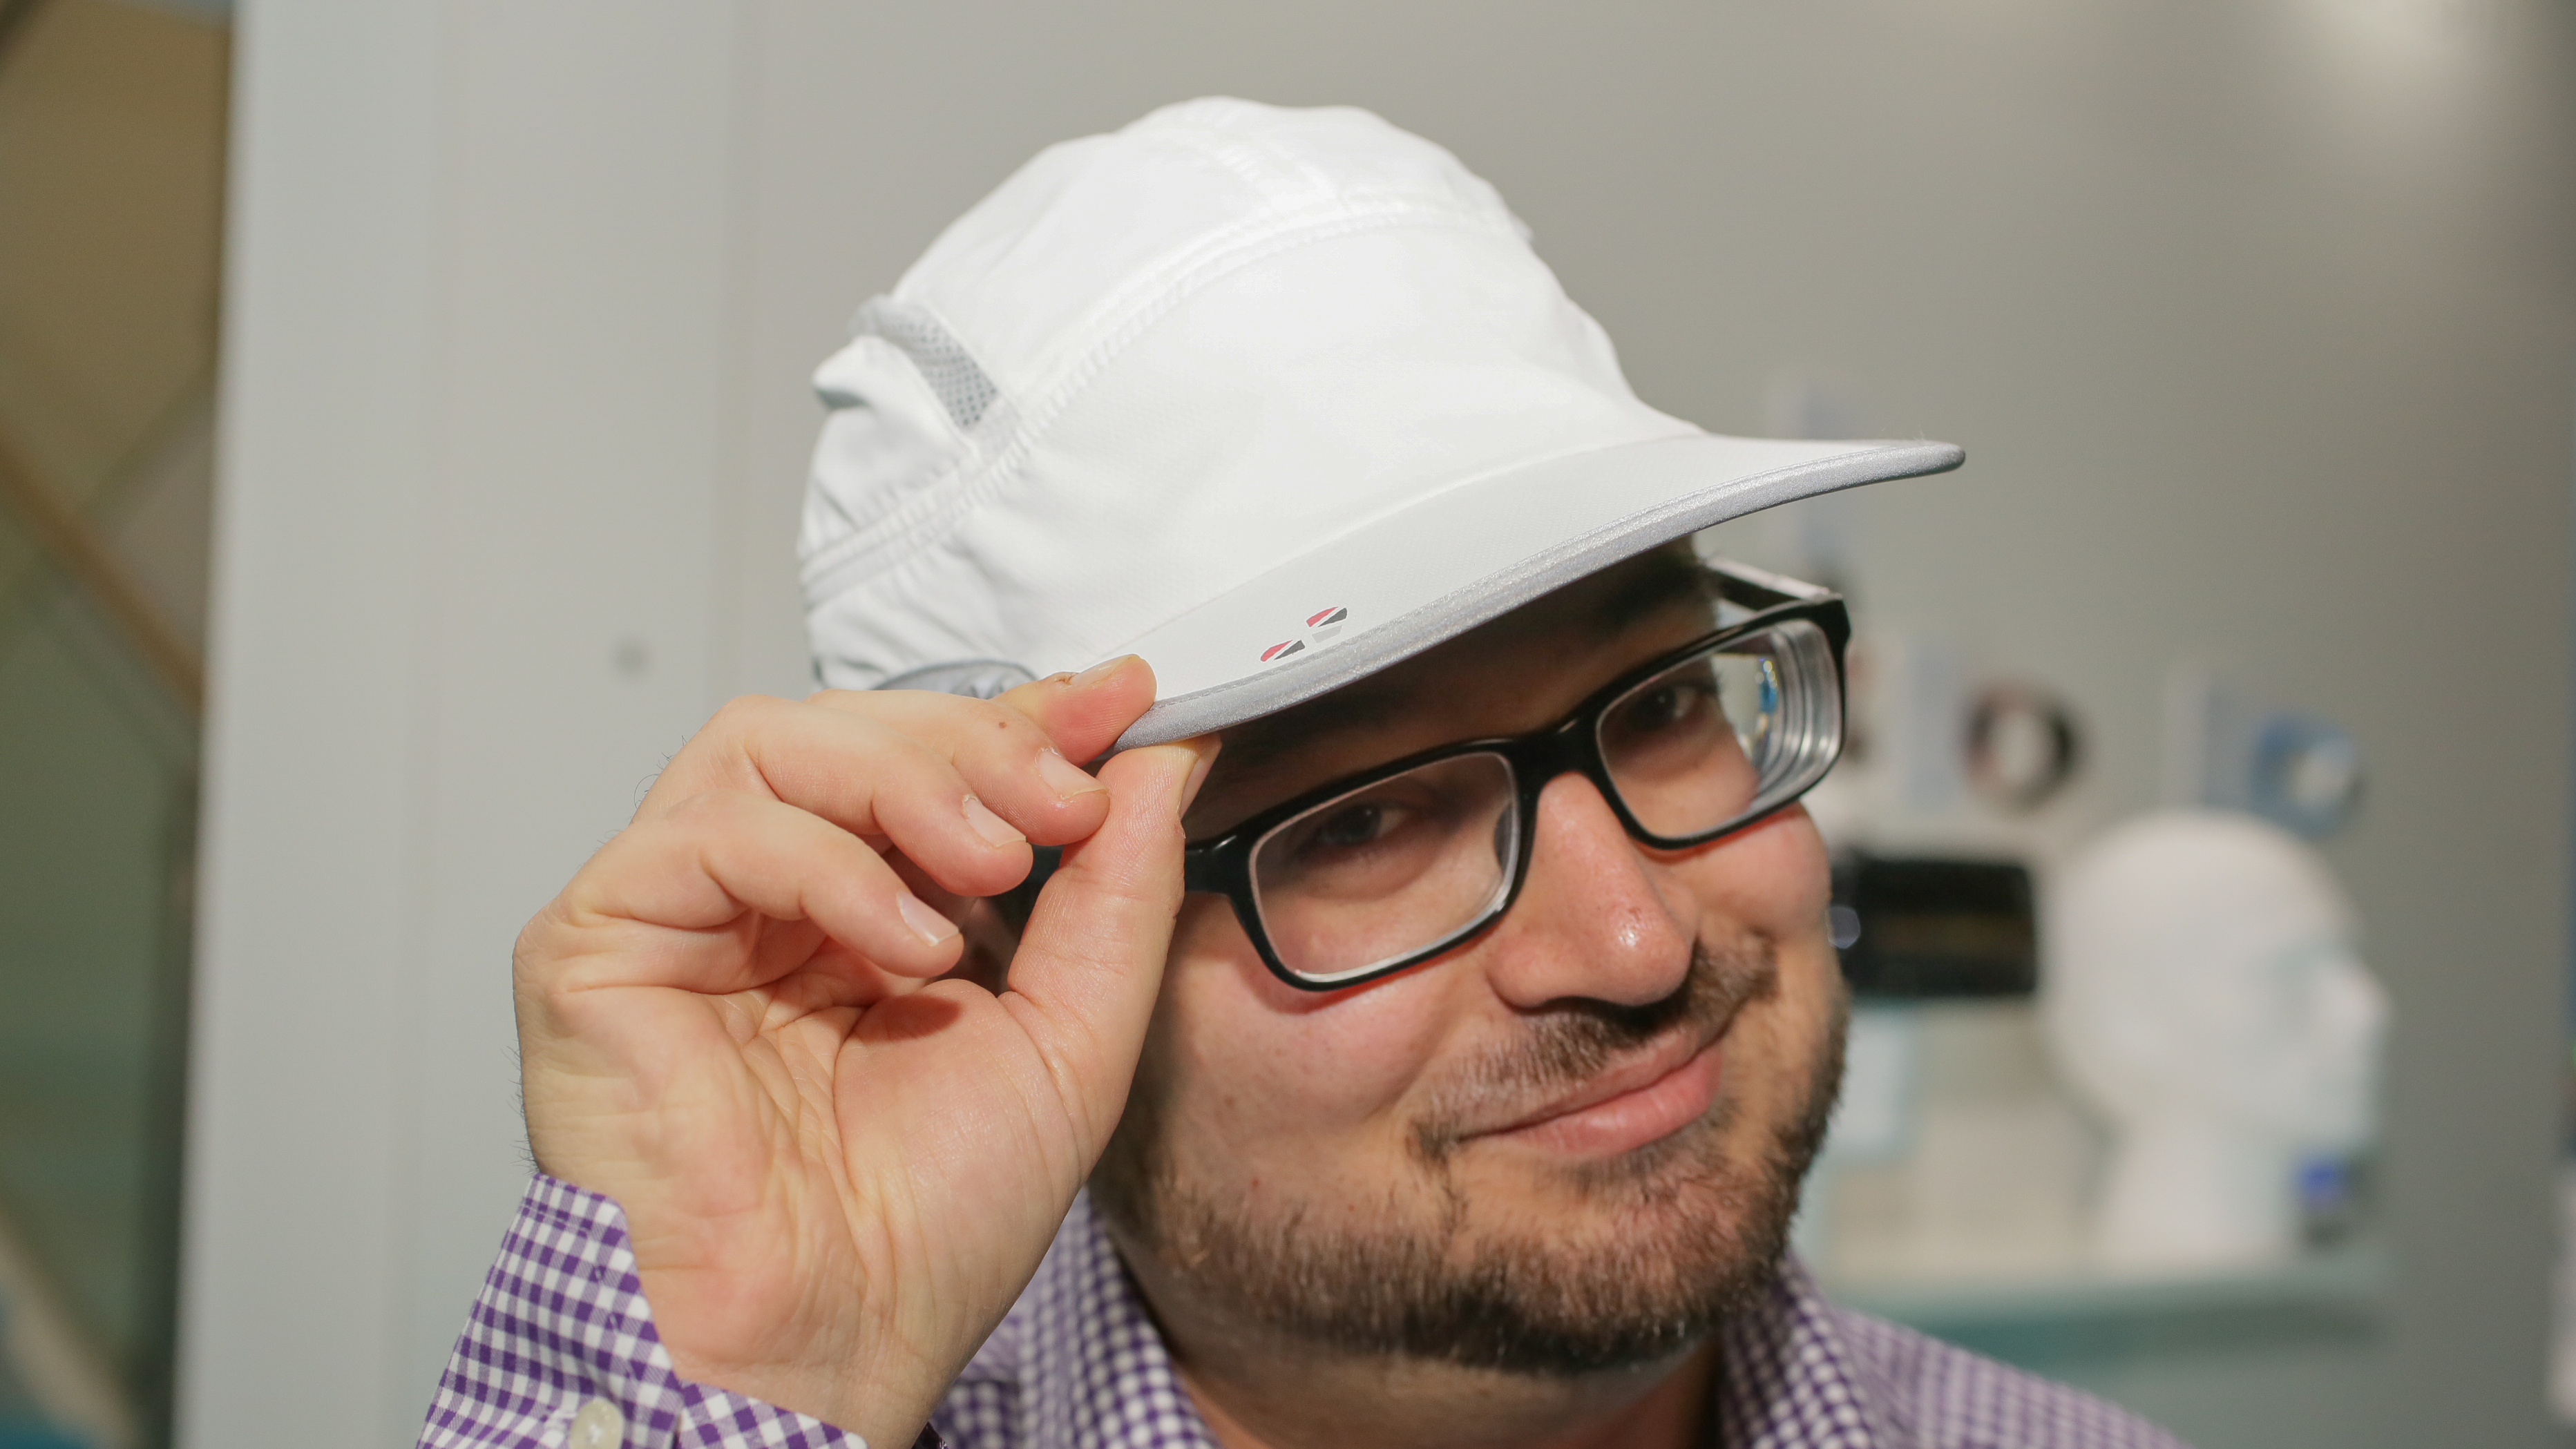 The LifeBEAM Smart Hat